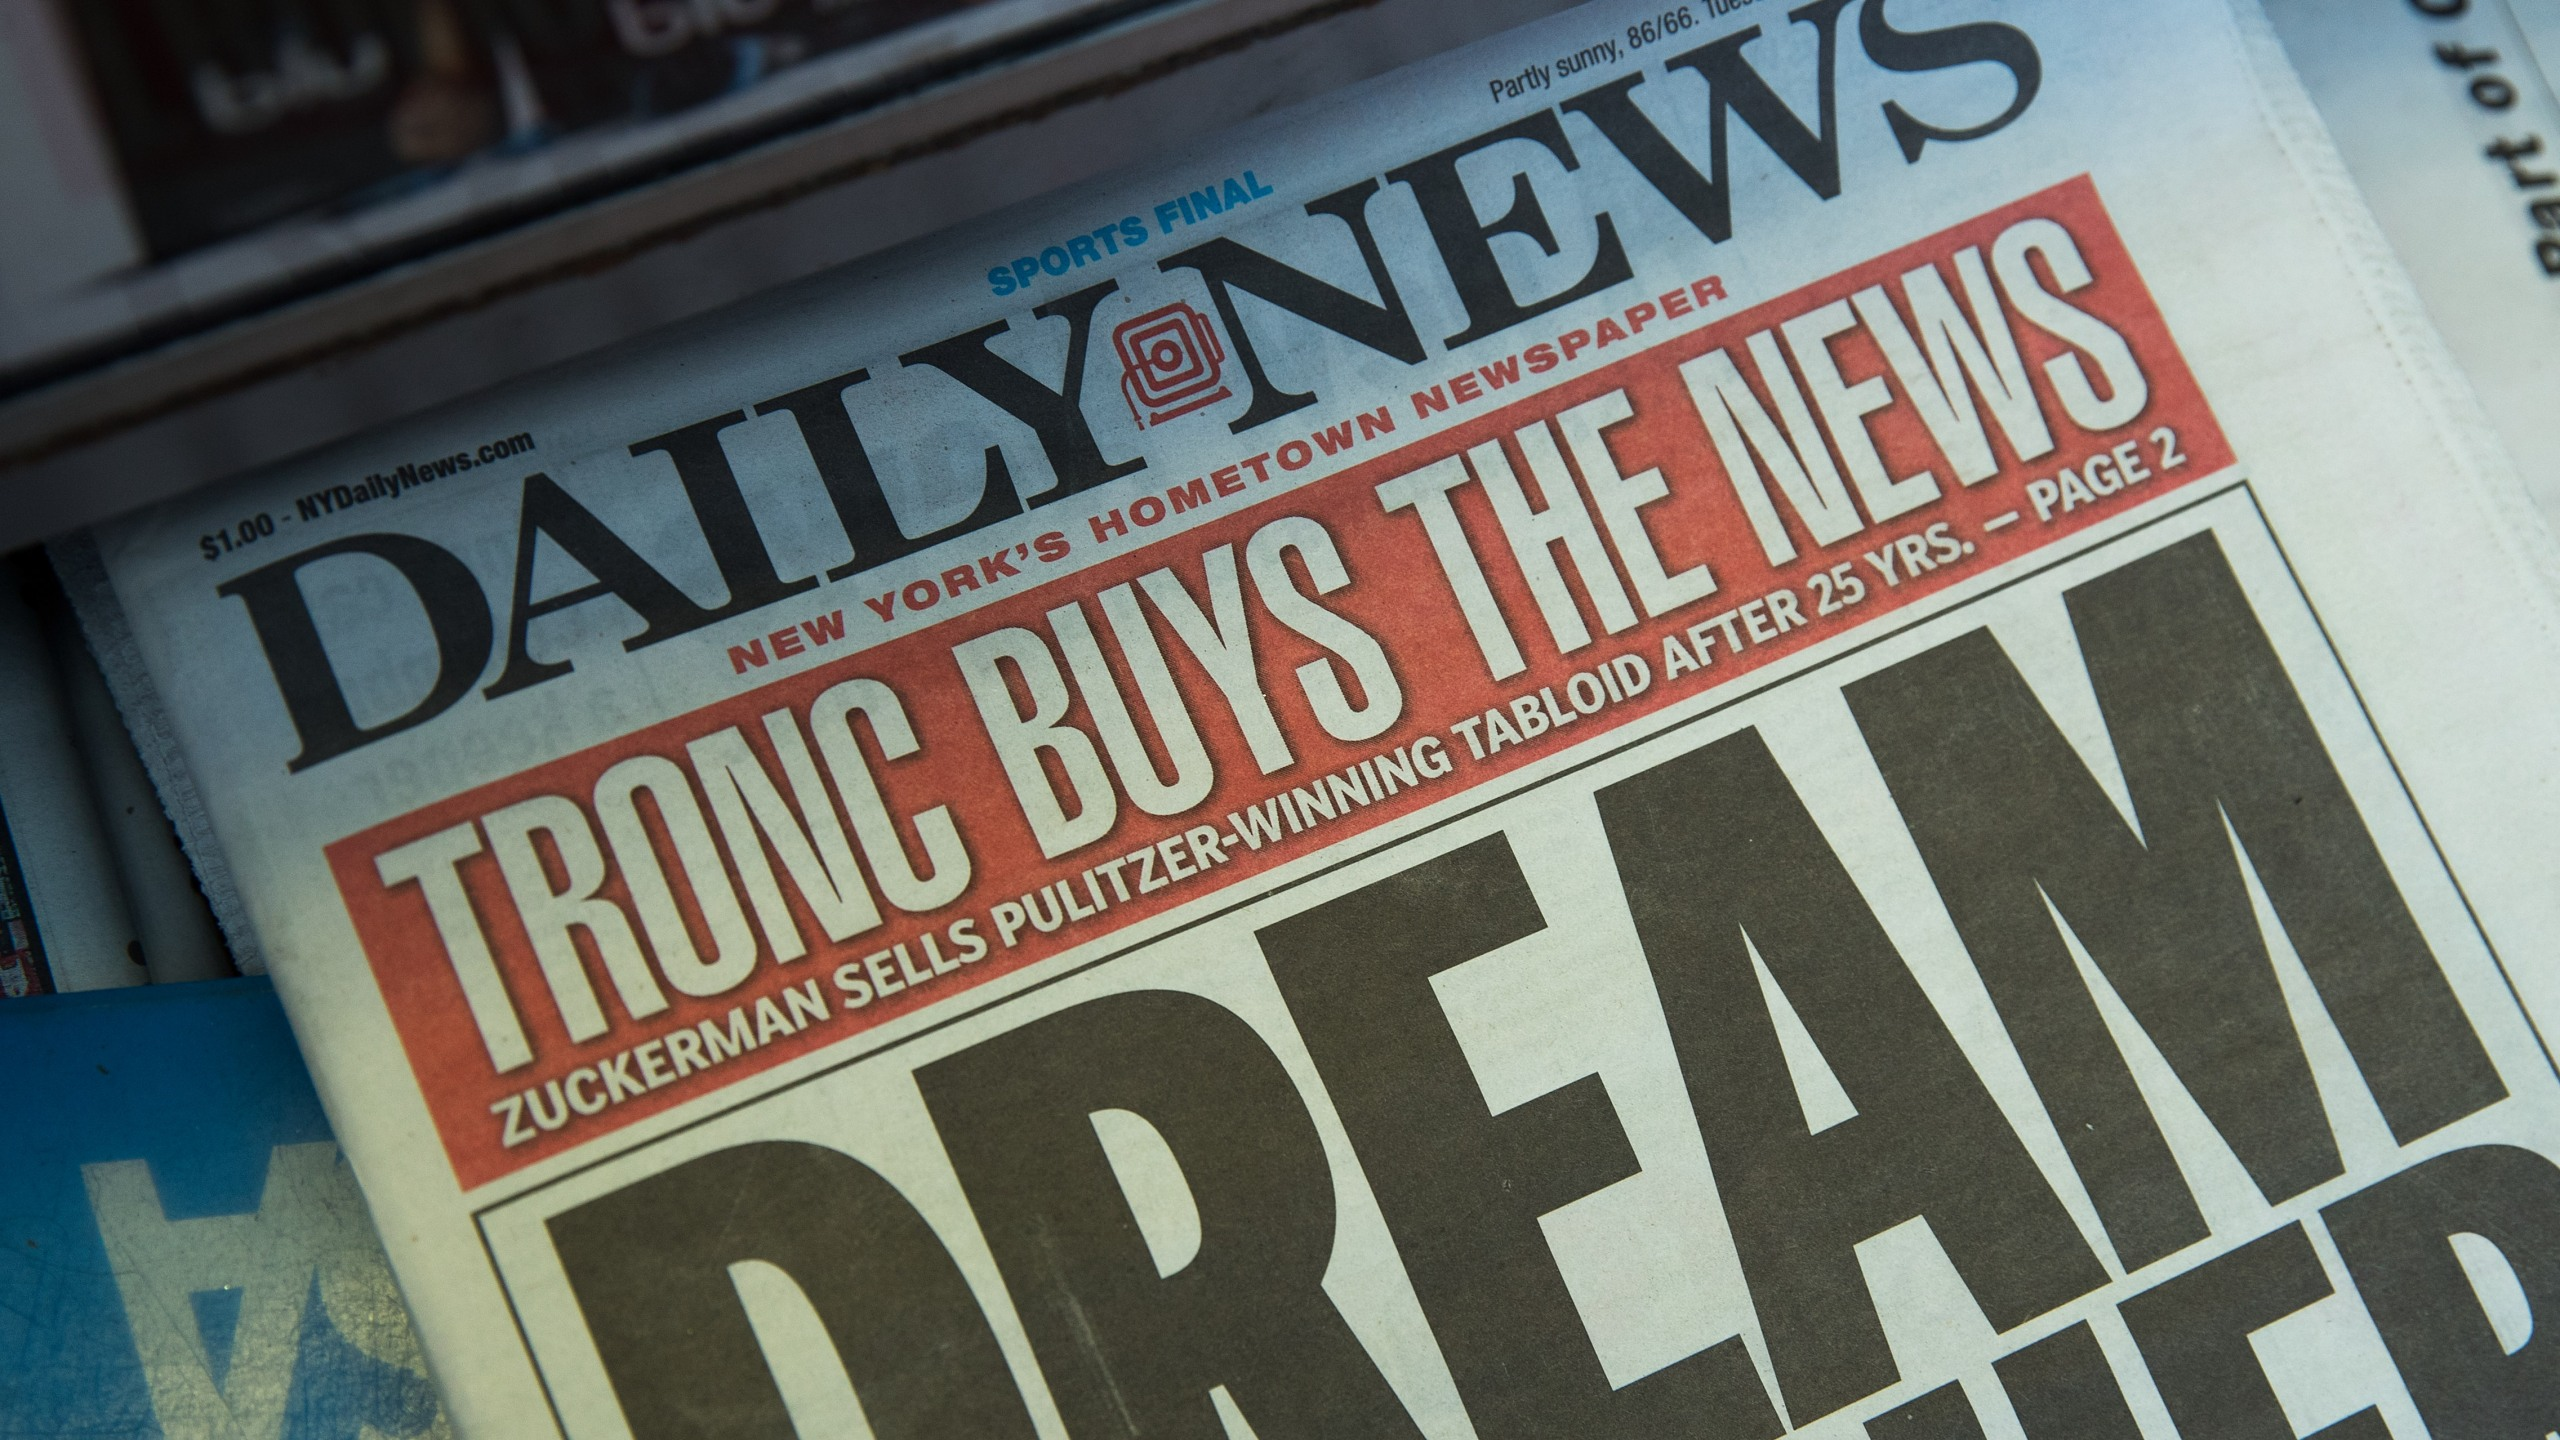 A copy of the New York Daily News sits on the shelf of a newsstand on Sept. 5, 2017 in New York City. Tronc, the publisher of the Chicago Tribune and The Los Angeles Times newspapers, announced on Monday that is had purchased The New York Daily News. (Credit: Drew Angerer/Getty Images)